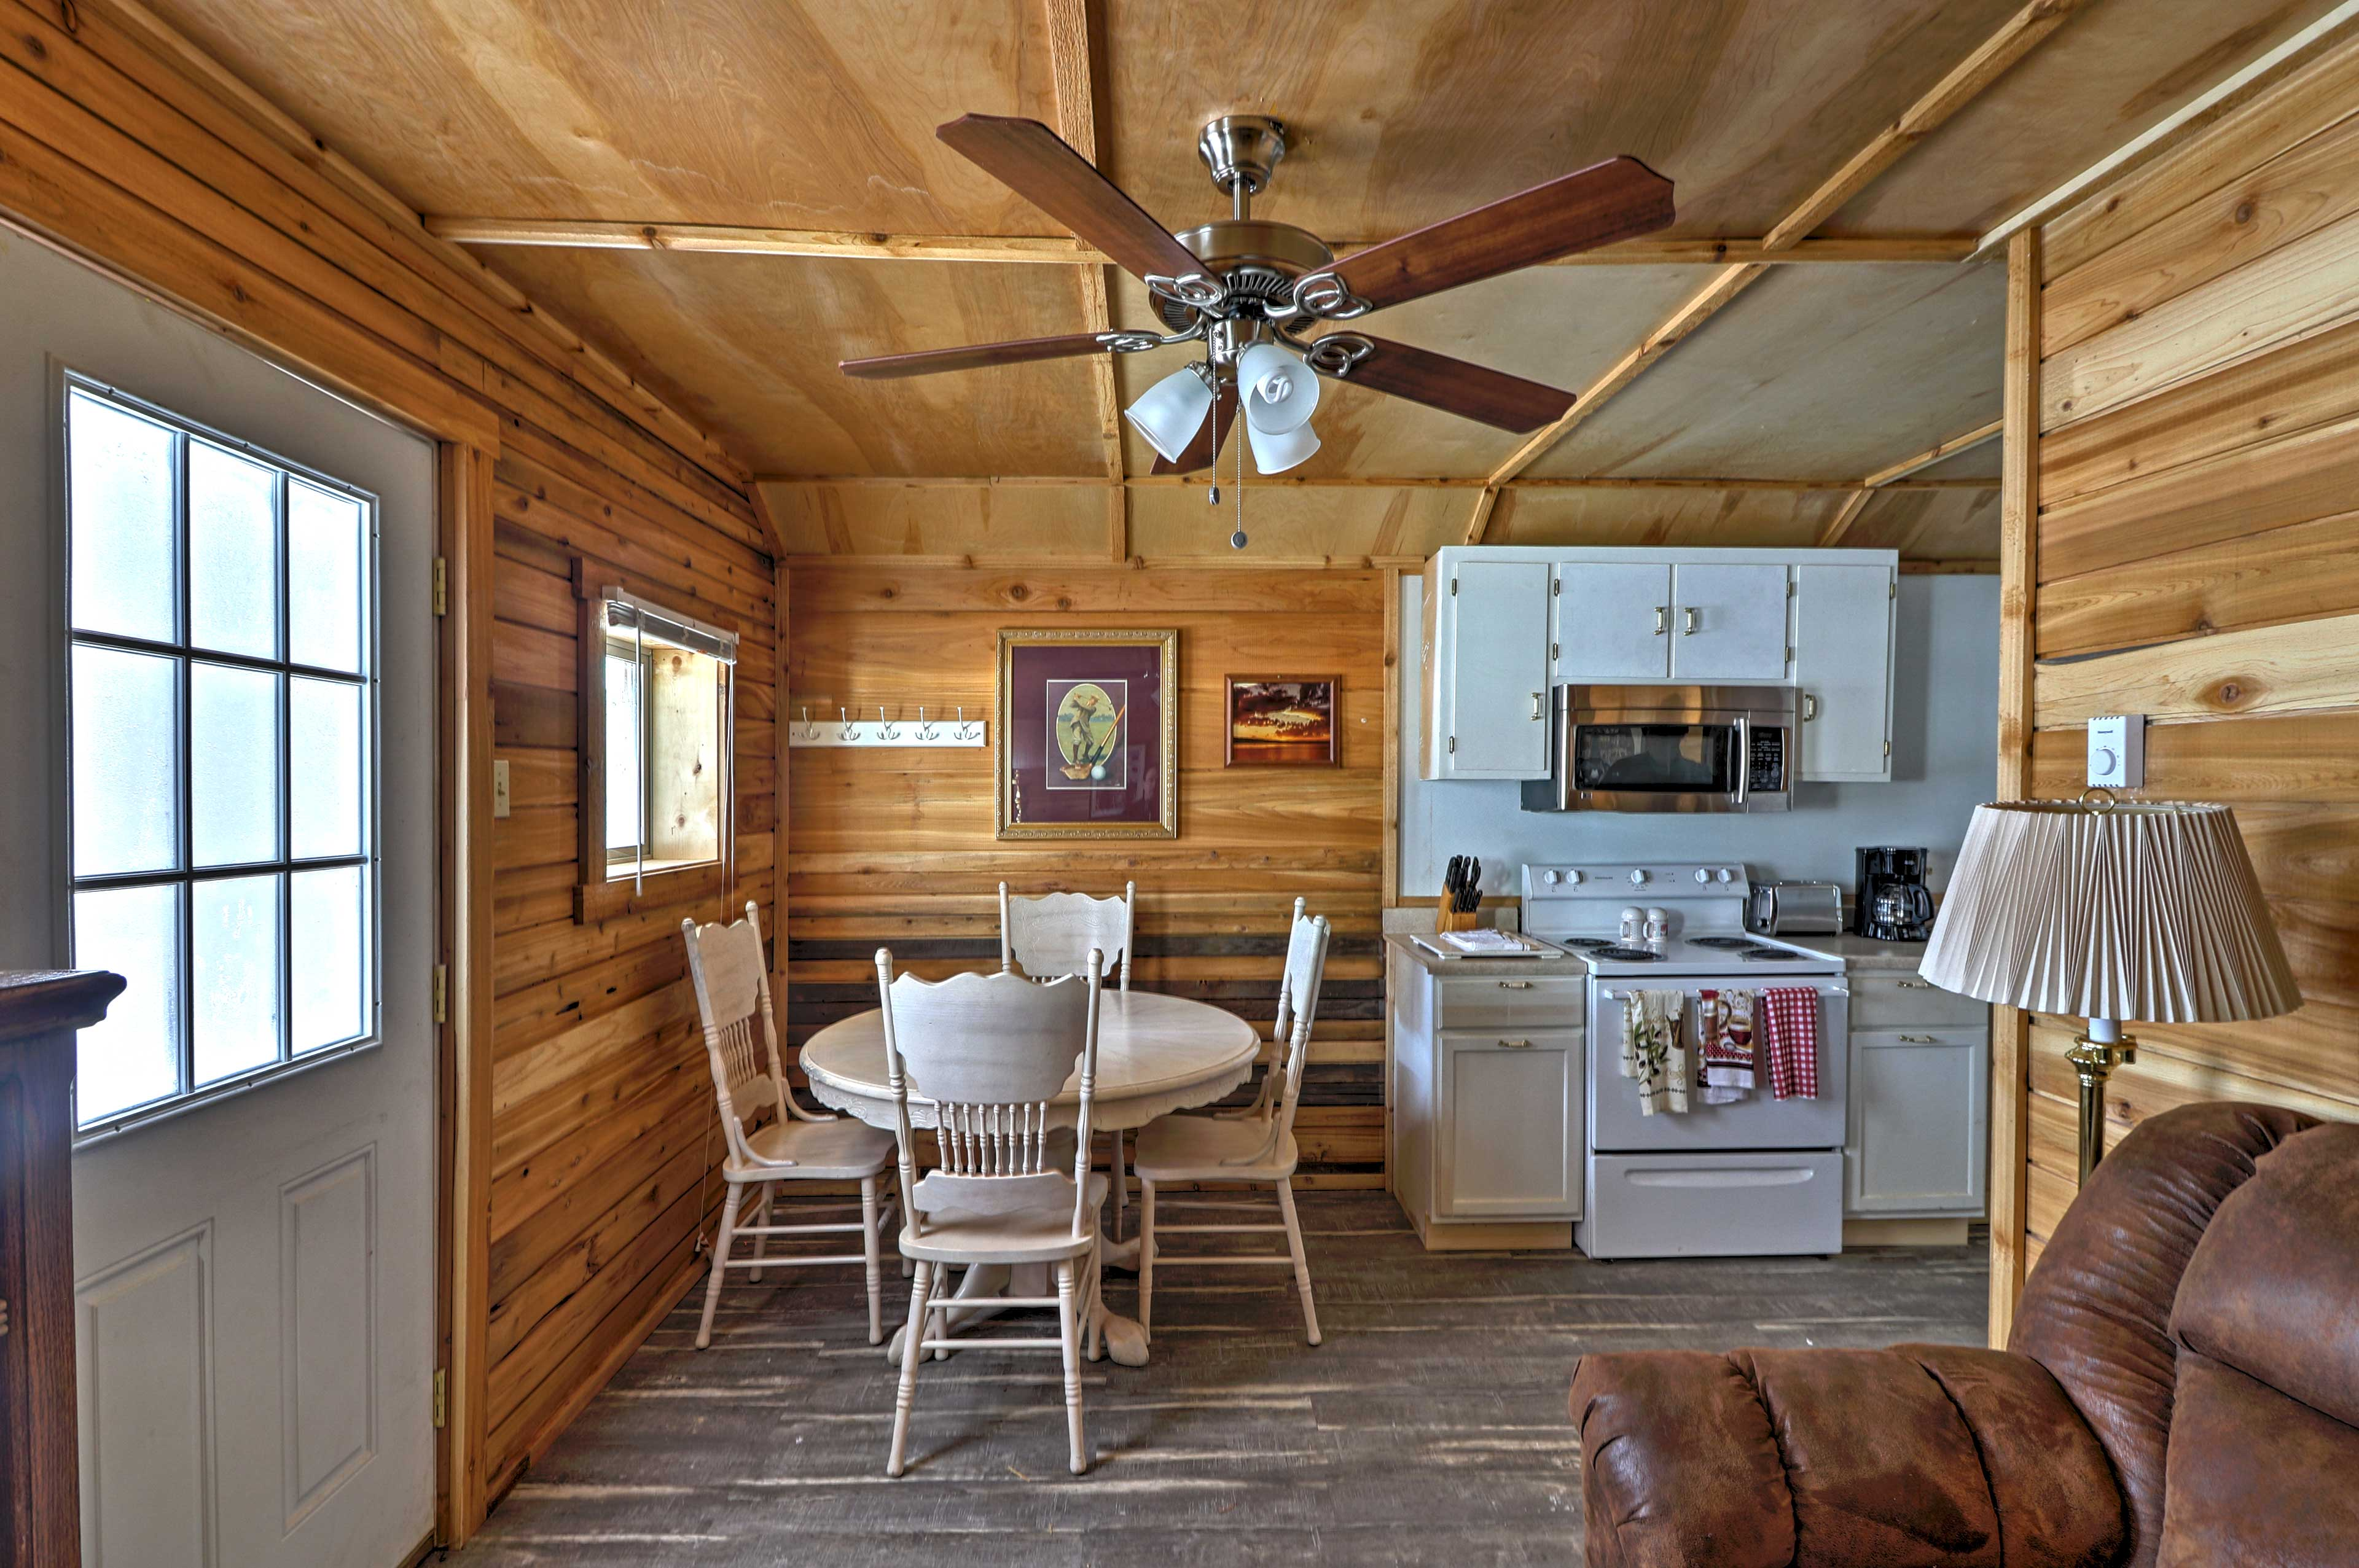 The interior features hardwood floors and pastoral decor.